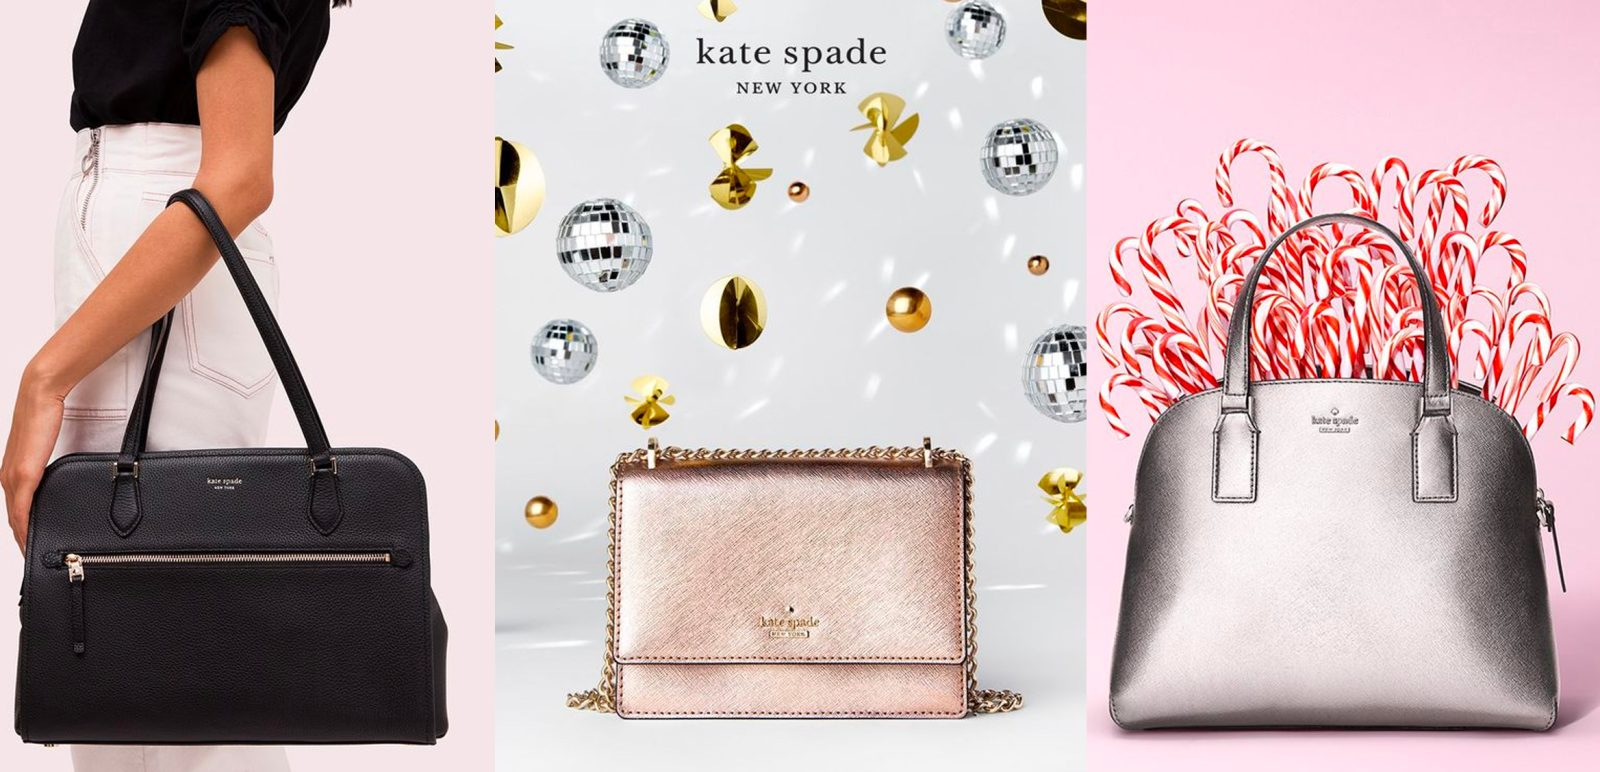 Kate Spade's Surprise Sale makes gifting easy: Up to 75% off handbags, more